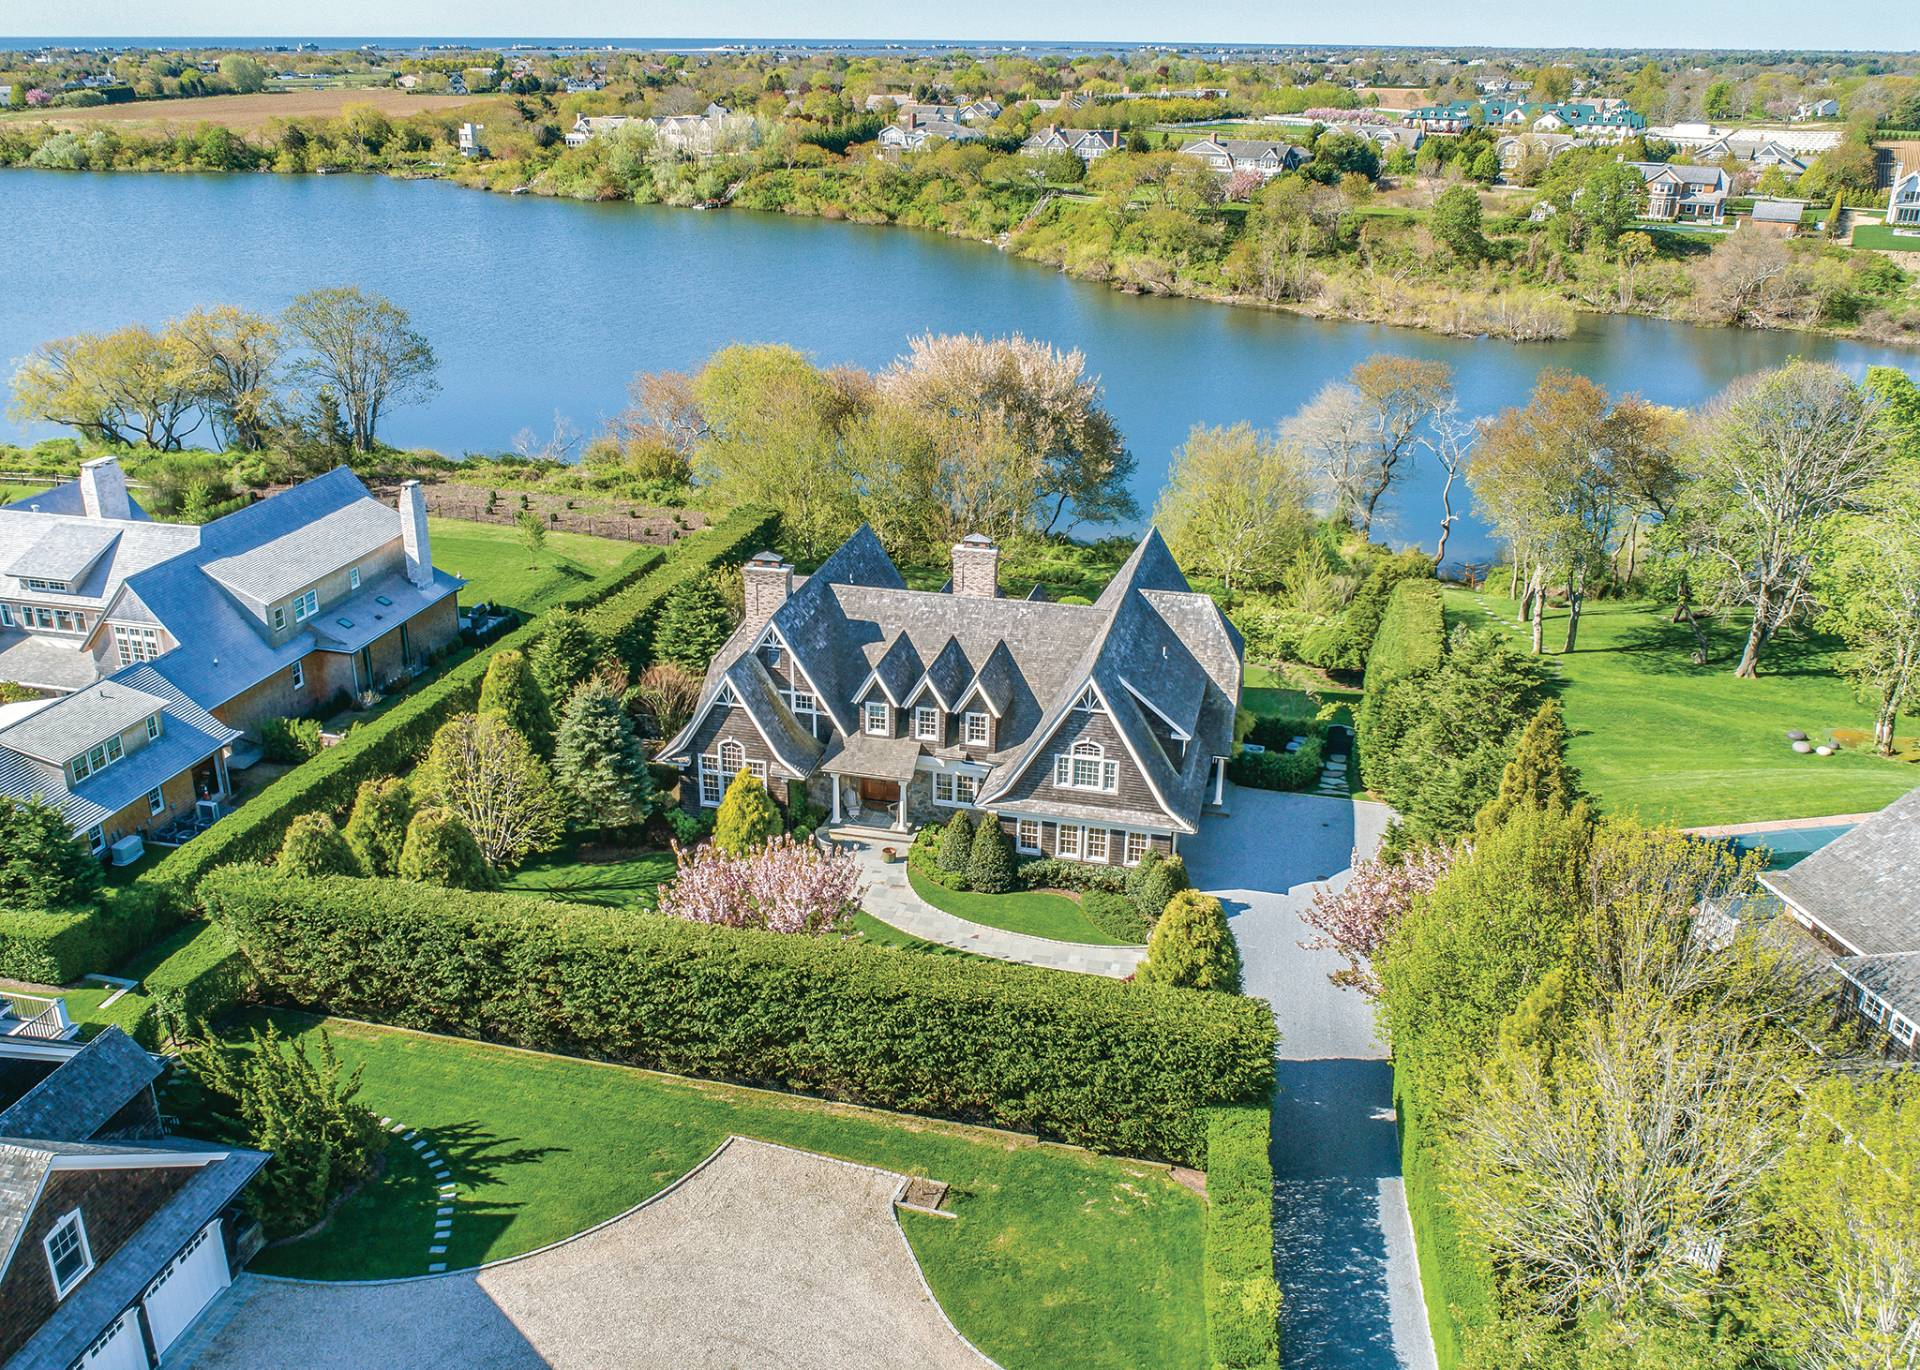 Single Family Home for Sale at Bridgehampton Waterfront With A Dock 7 Kellis Way, Bridgehampton, New York